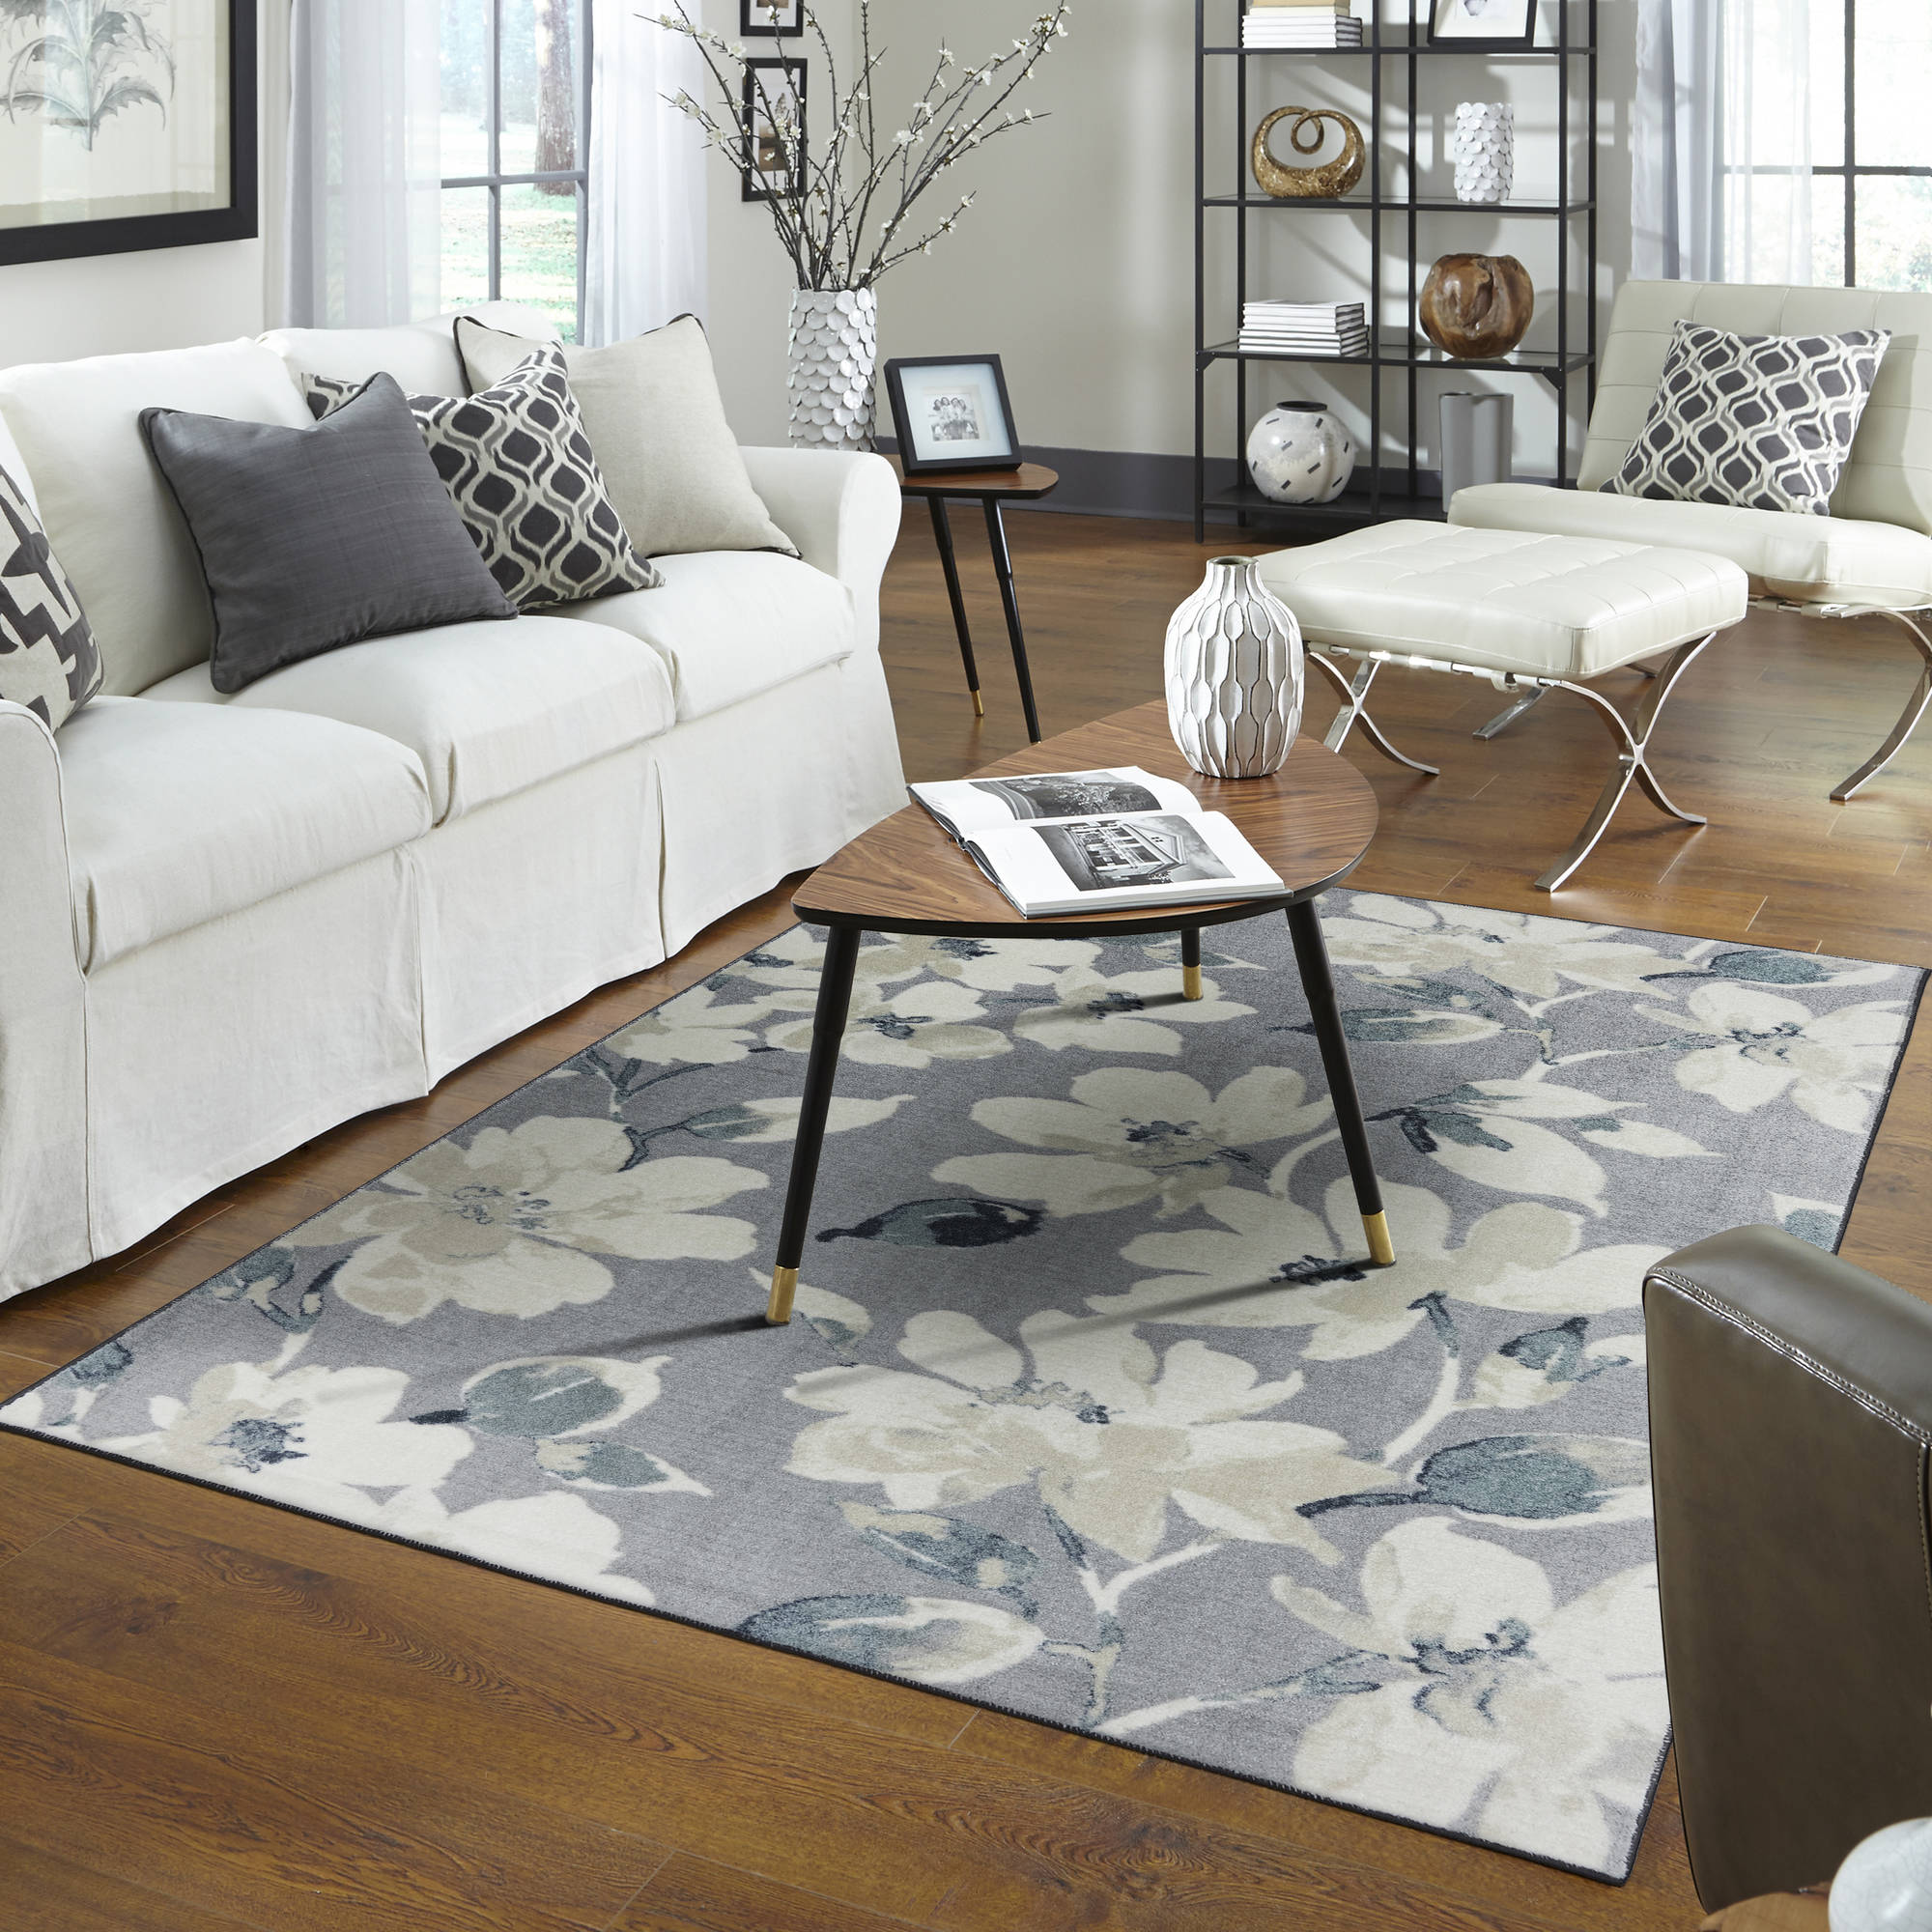 Mohawk Home Belle Epoque Printed Nylon Area Rug